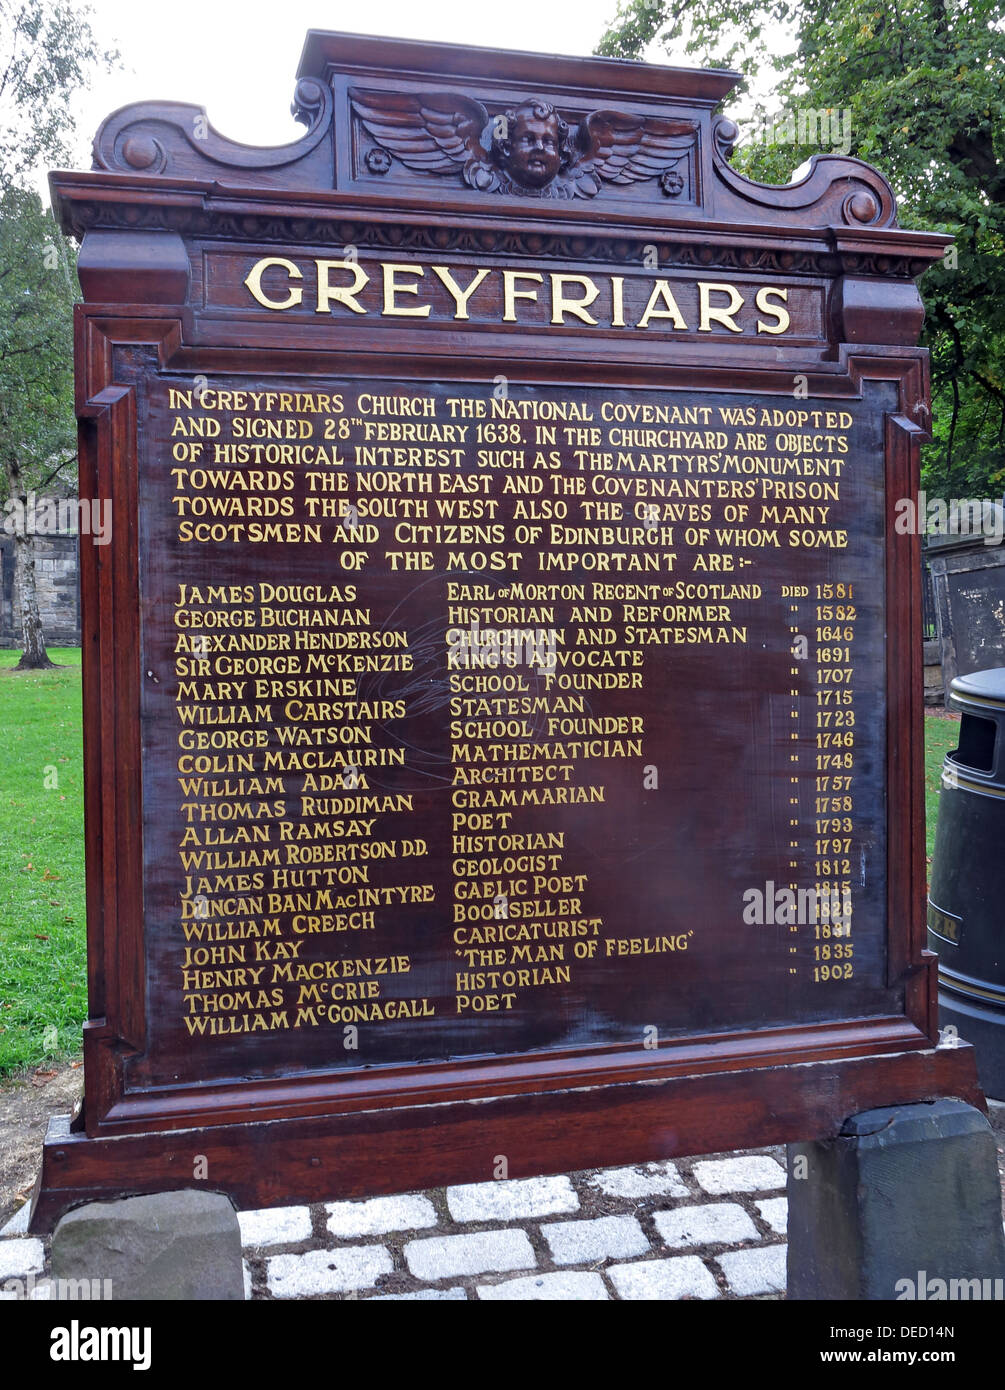 Scottish,classic,public,house,CAMRA,Grayfriars,Gray,Friar,Friars,Grey,bar,bars,in,Church,yard,churchyard,gravestone,graveyard,grave,graves,graveyards,gravestones,sign,statue,Skye,Terrier,old,town,John,Gray,kirk,yard,kirkyard,gate,famous,entrance,famous,people,buried,in,the,died,dead,gotonysmith,oldtown,JohnGray,Lady,Burdett-Coutts,Burdett,Coutts,Jan,Bondeson,faithful,dog,dogs,Devotion,Scotsman,scotsmen,tourism,tourist,attraction,oldtown,Buy Pictures of,Buy Images Of